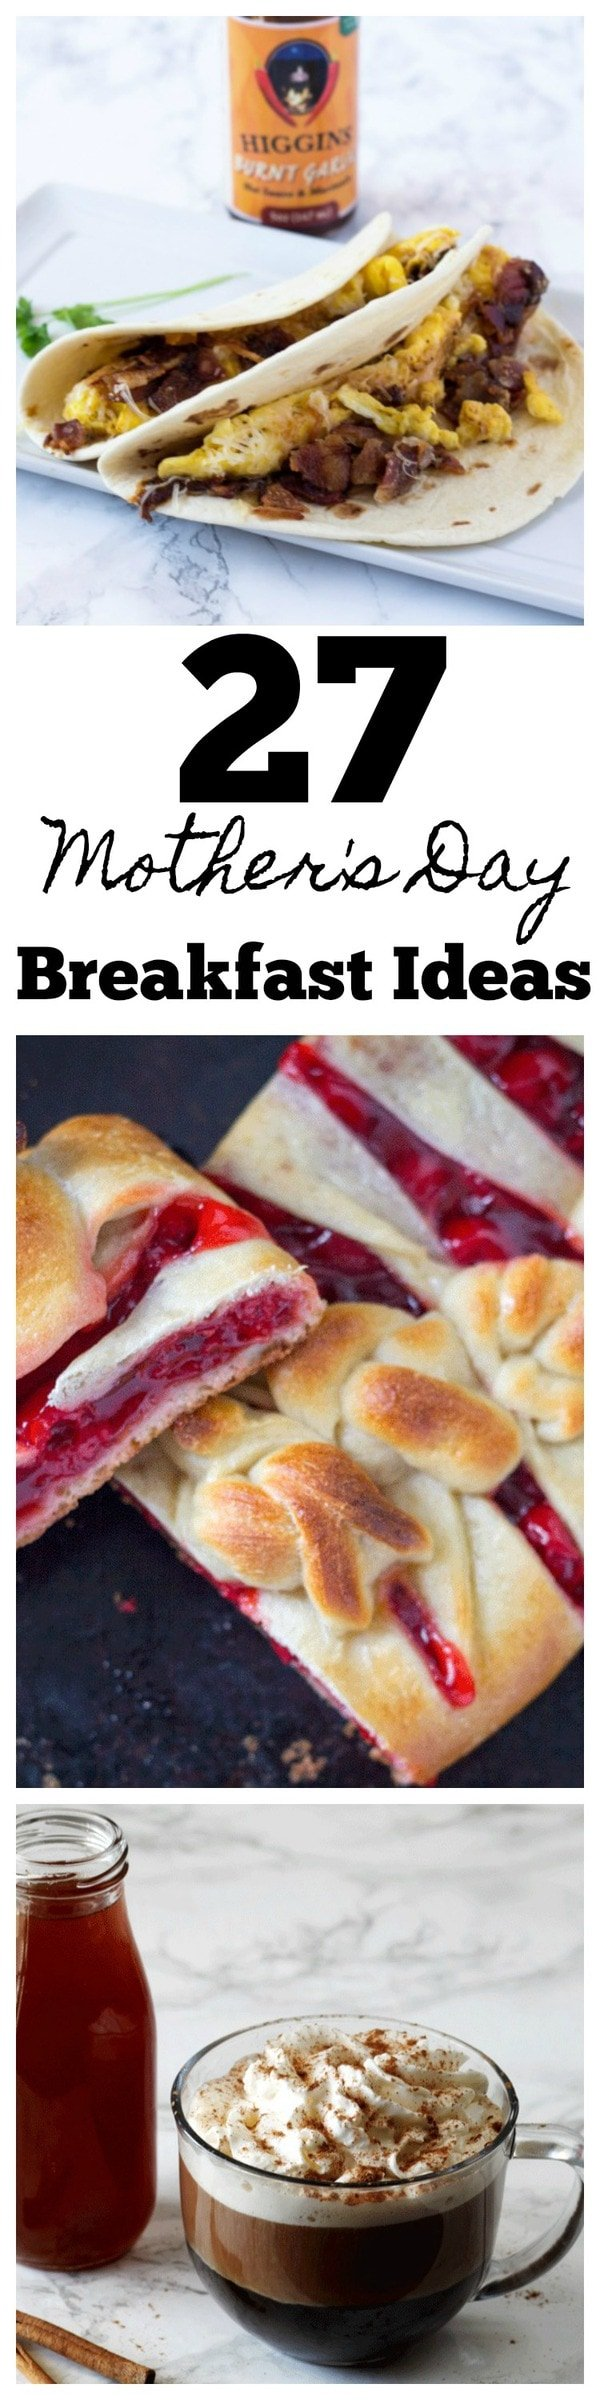 27 Mother's Day Breakfast Ideas. Don't be stuck on what to make mom for breakfast on Mother's Day with this list of Mother's Day Breakfast Recipes. You can easily give Mom breakfast in bed with some tasty treats! #Mothersday #breakfast #breaakfastinbed